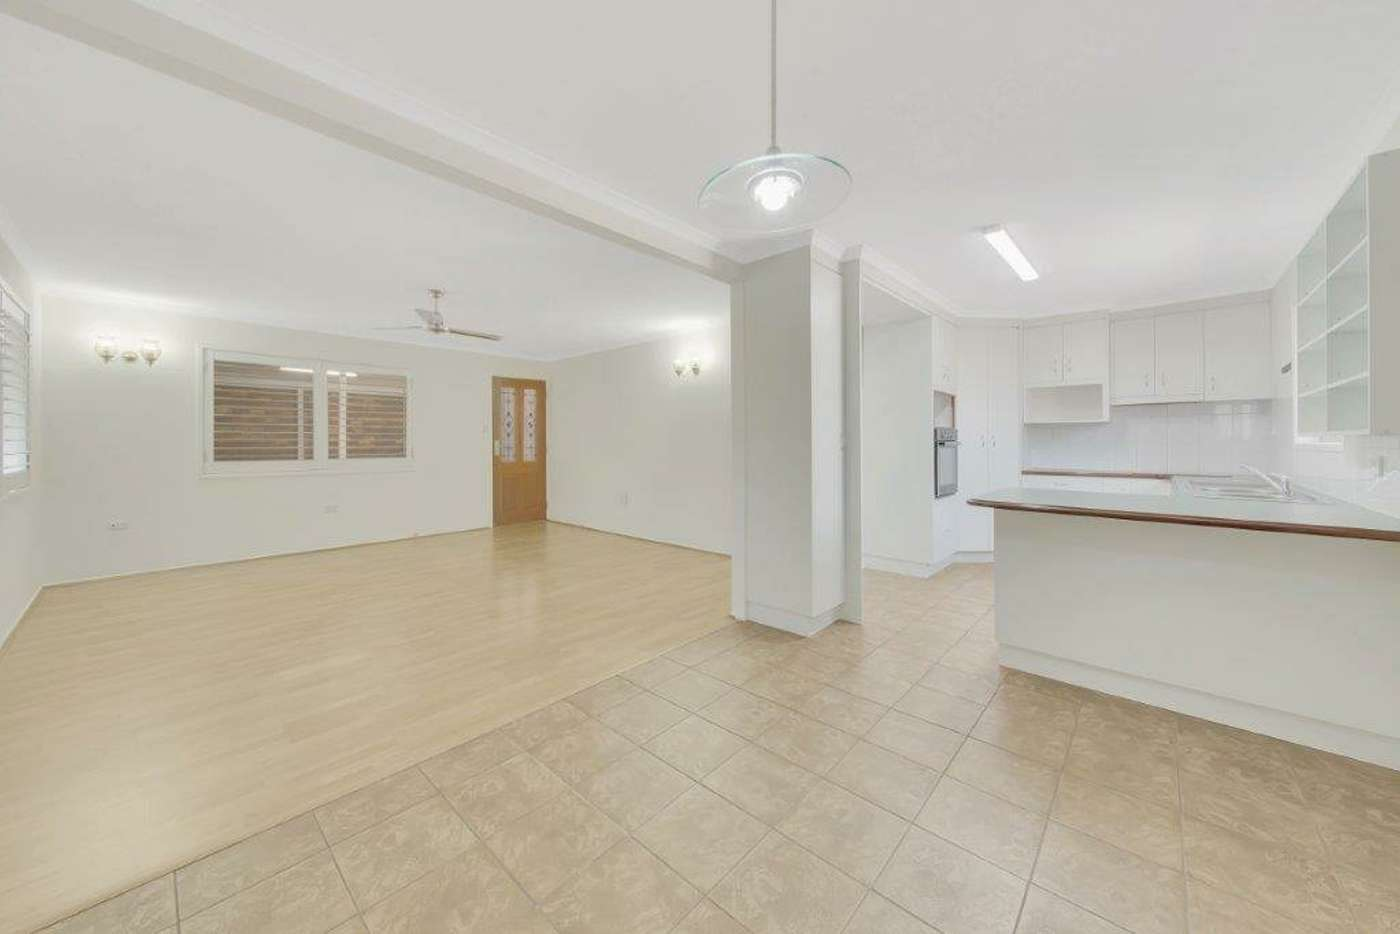 Sixth view of Homely house listing, 34 Venus Street, Telina QLD 4680